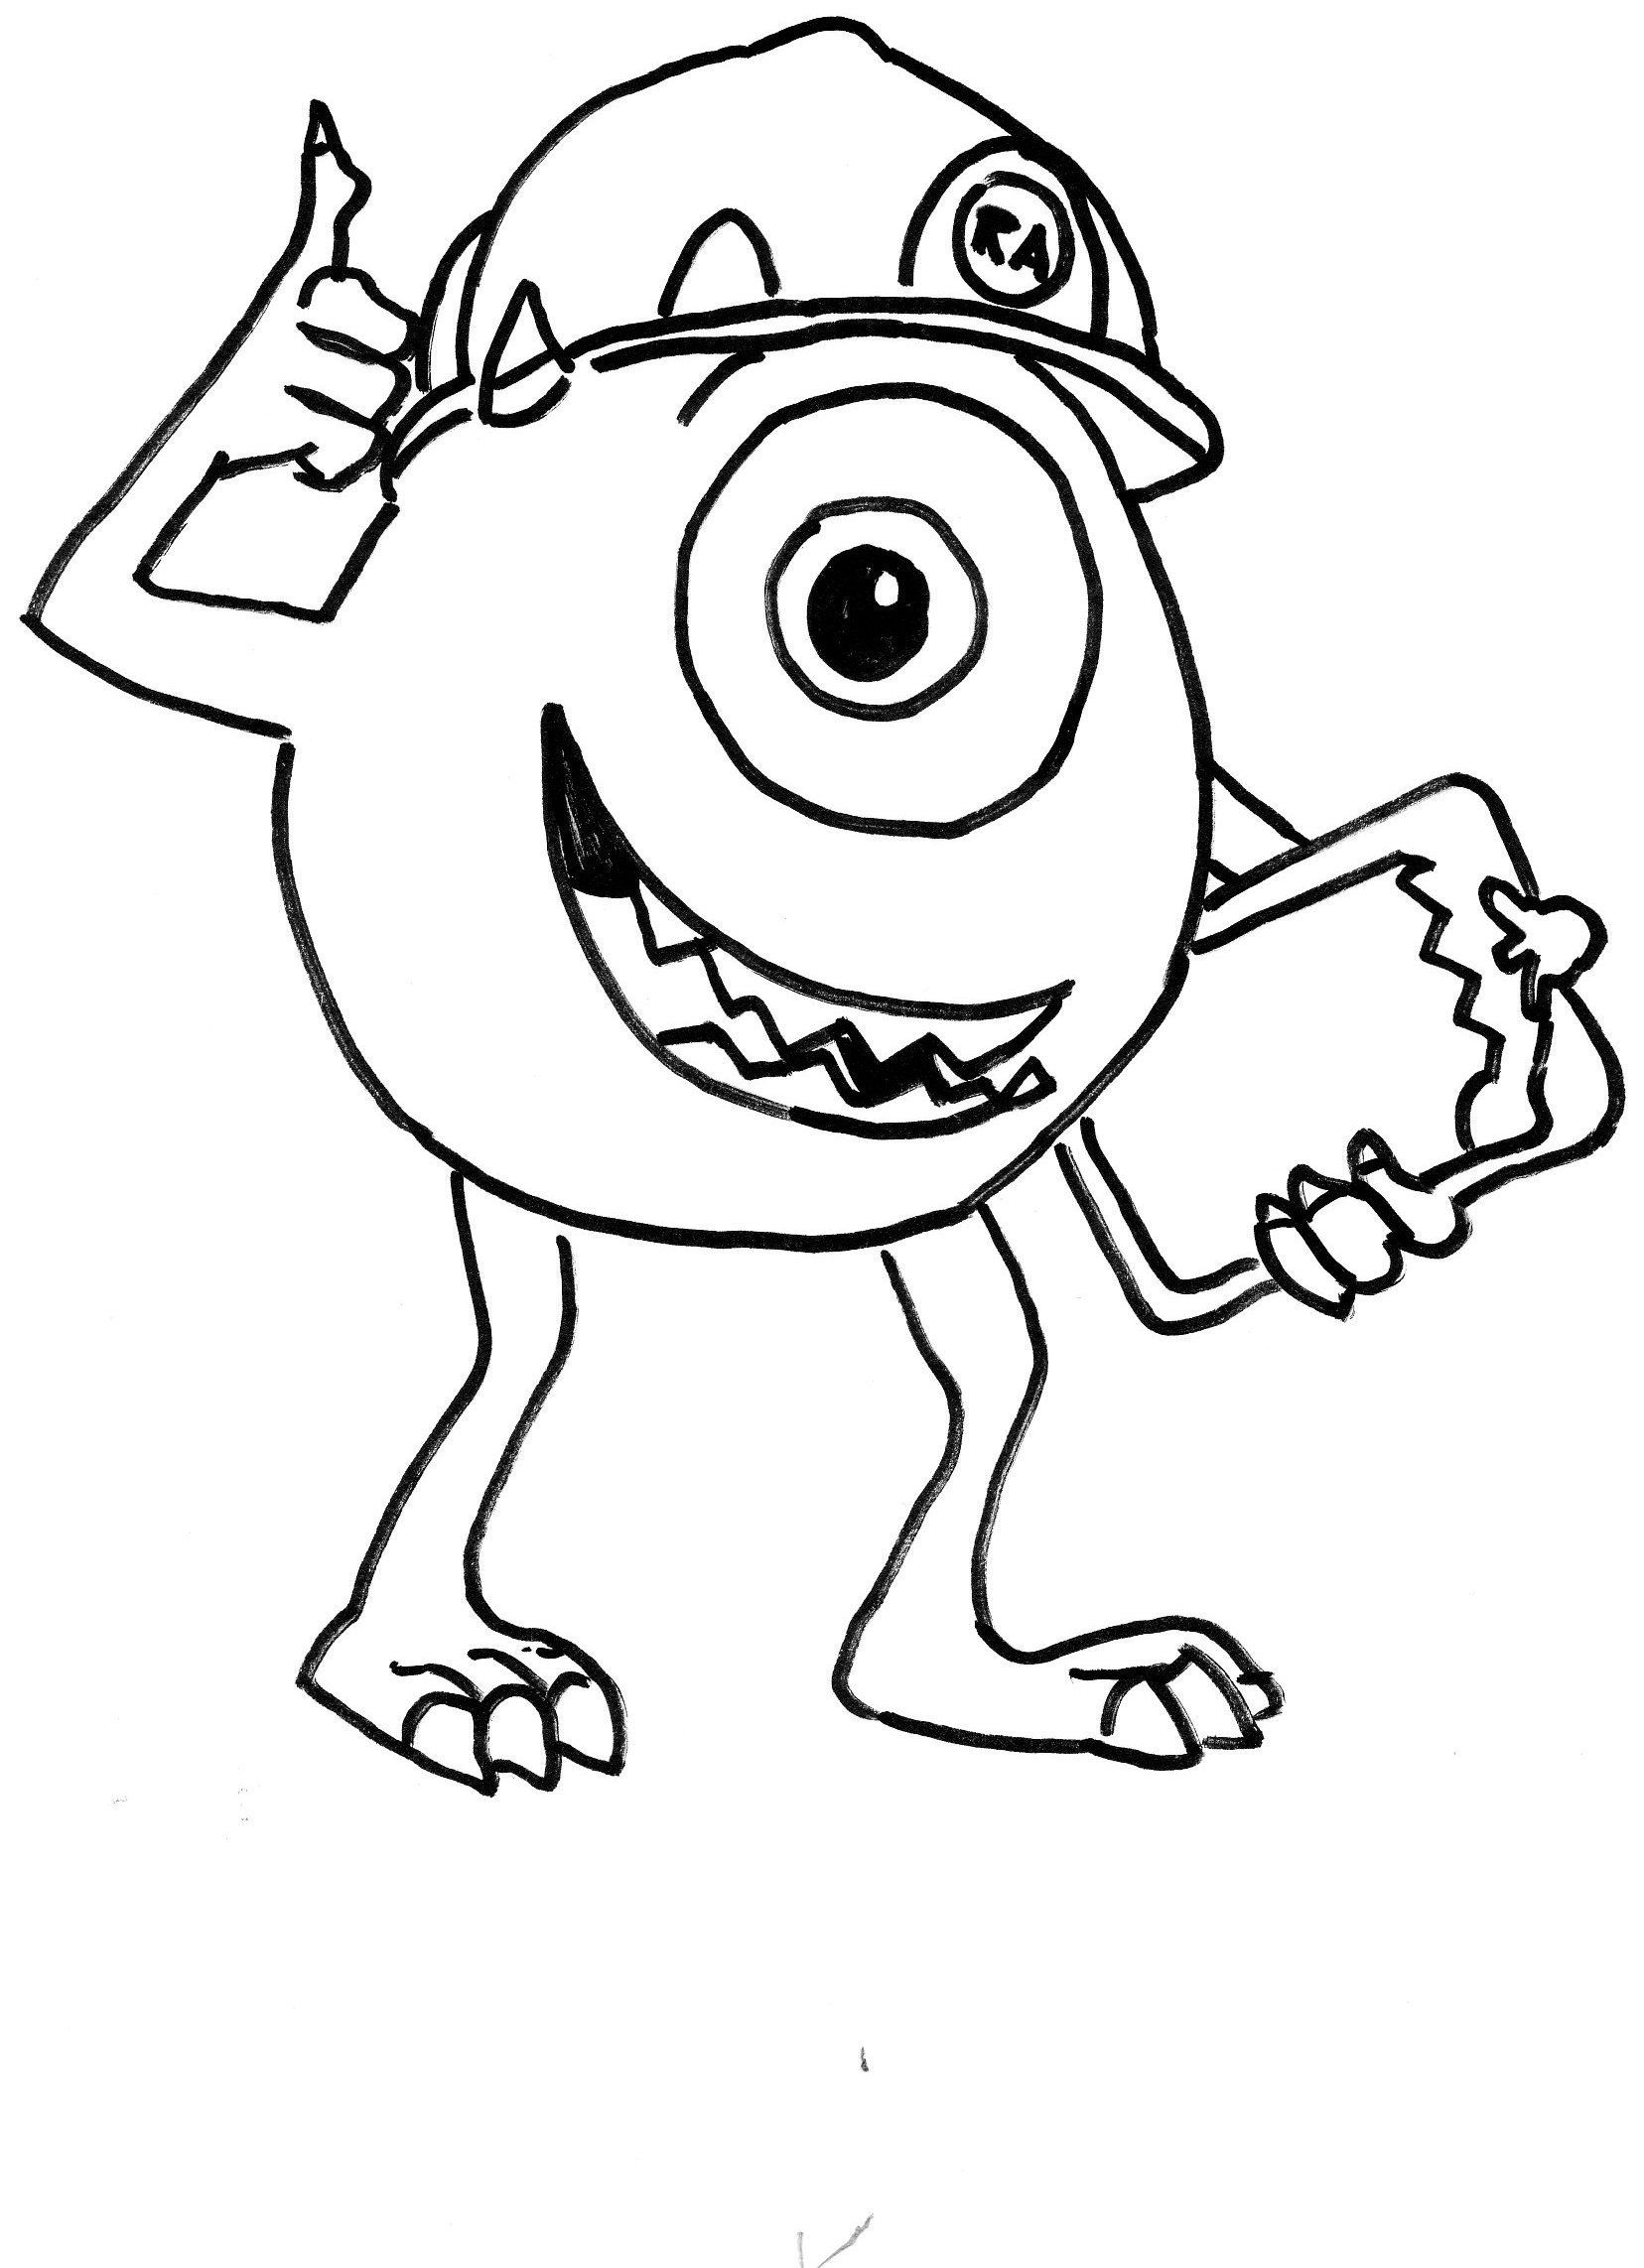 Coloring Pages For Kids Boys Coloring Pages Coloring Ideas Stunning Book For Boys Boy In 2020 Monster Coloring Pages Coloring Pages For Boys Unicorn Coloring Pages